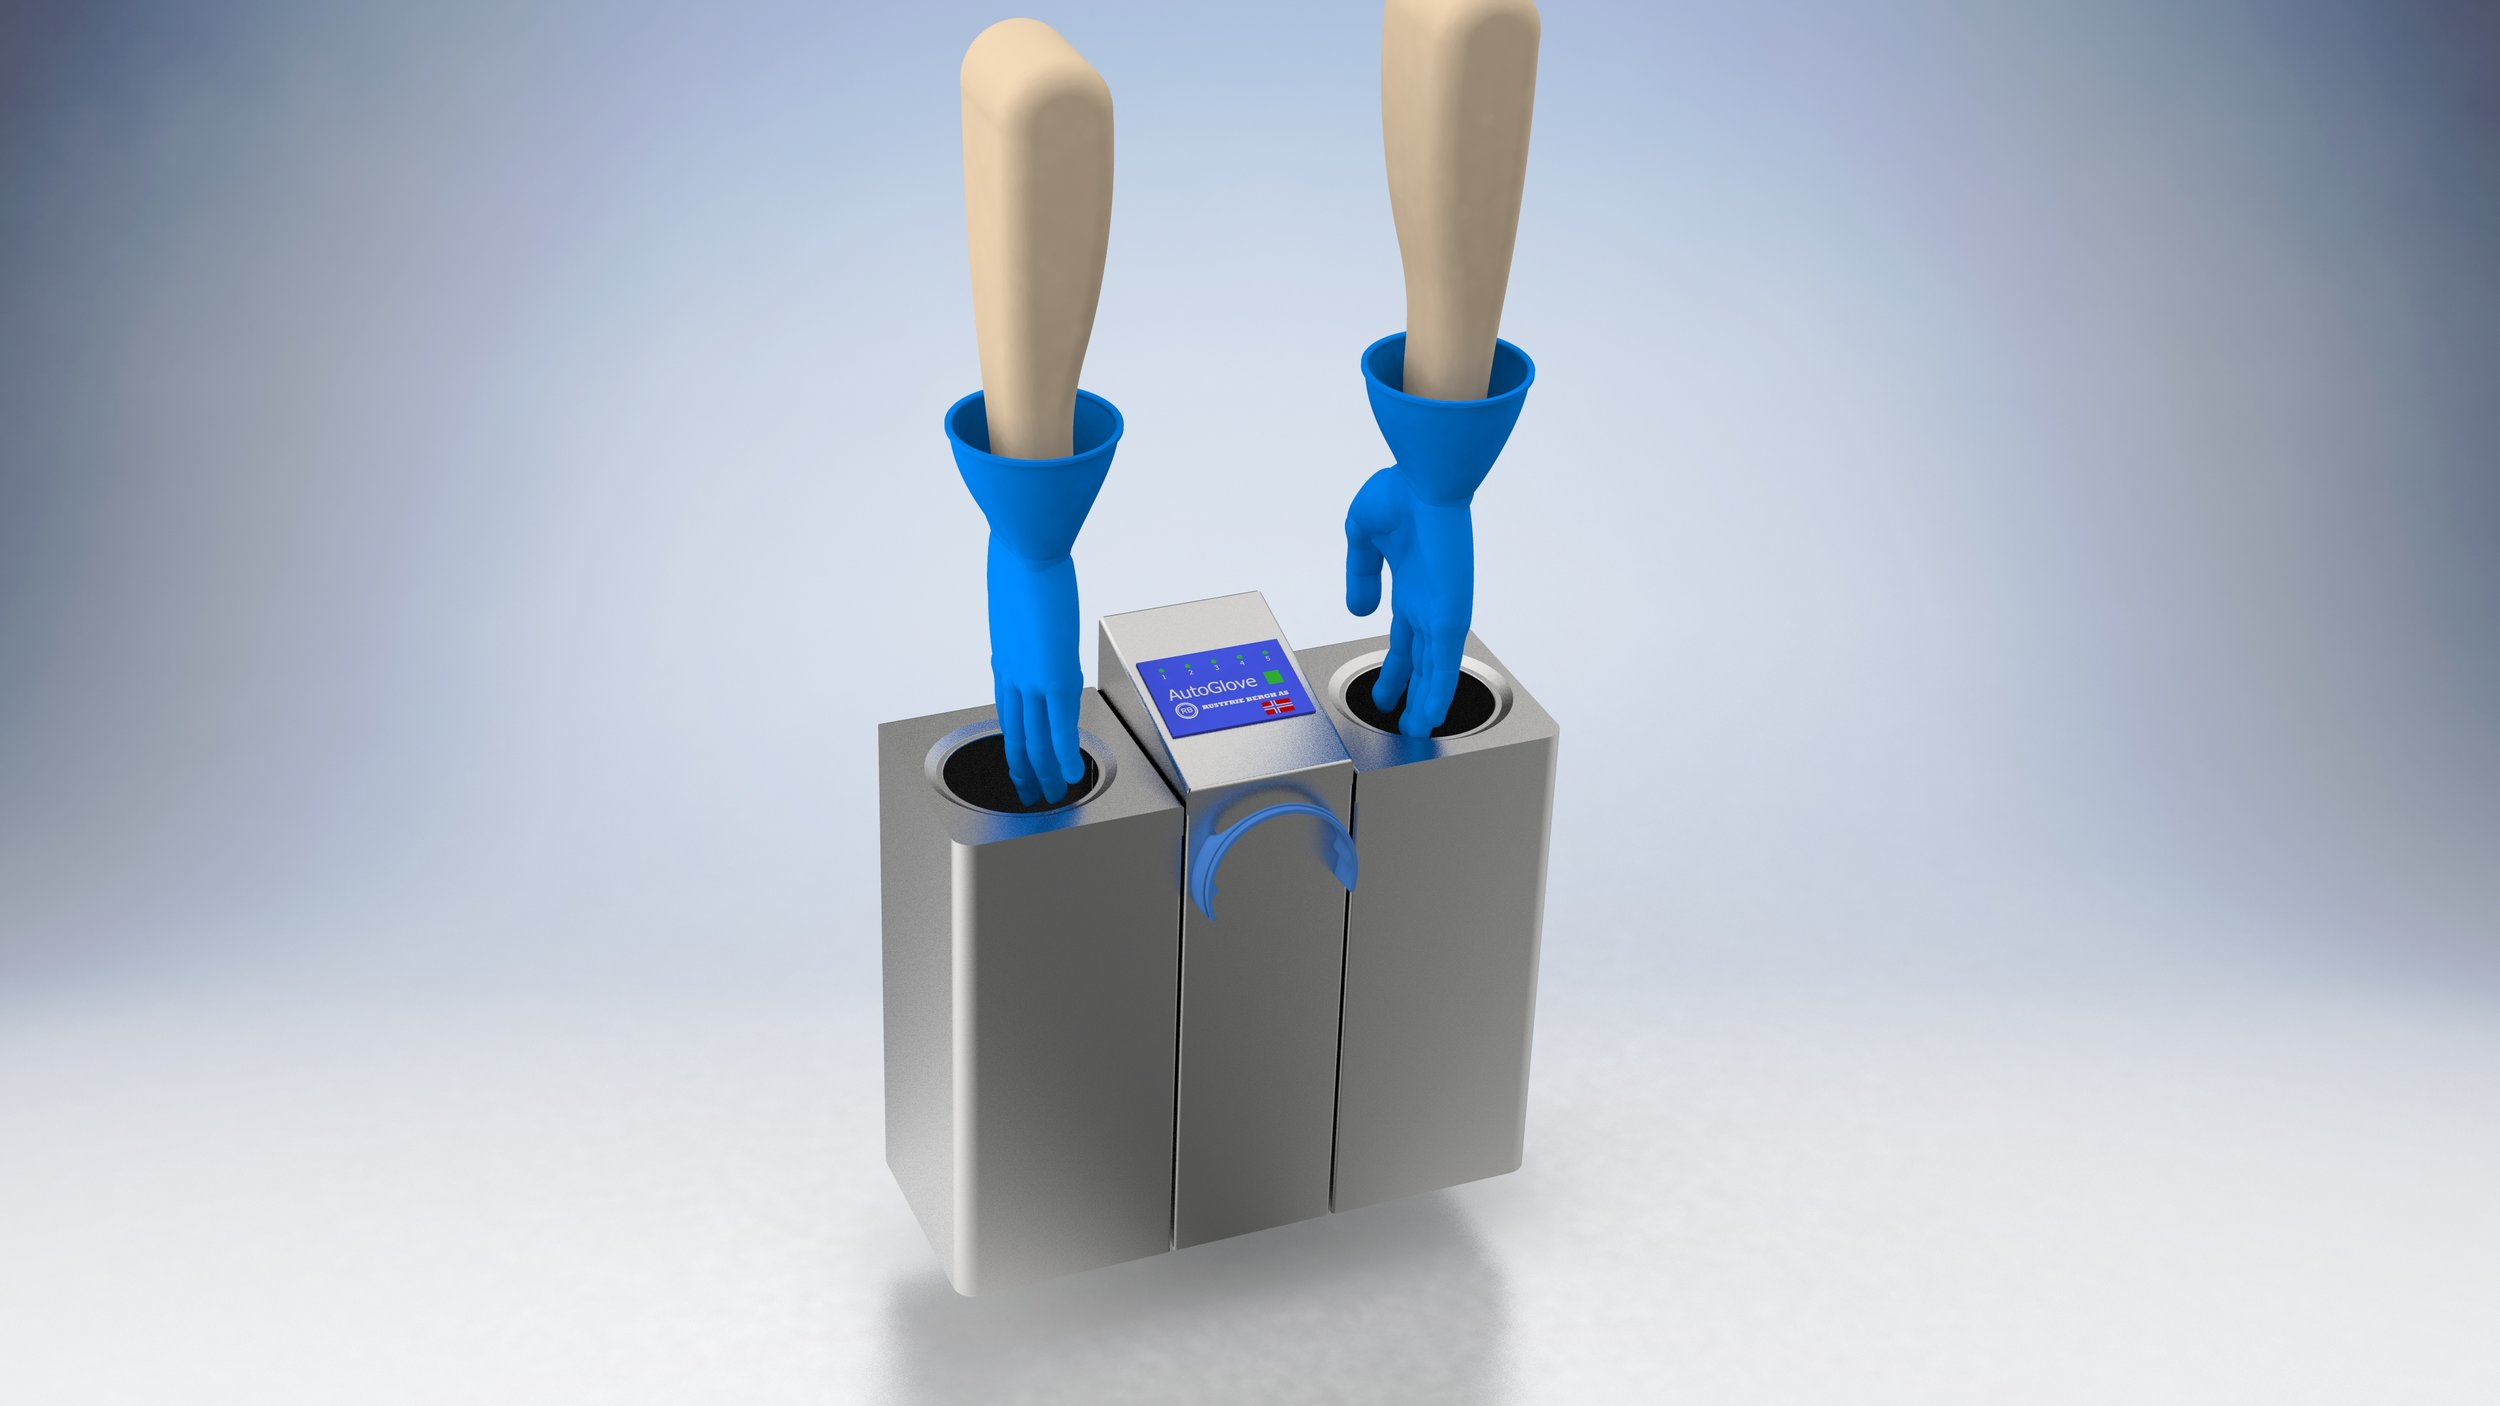 AutoGlove M hands and gloves remove.21.jpg